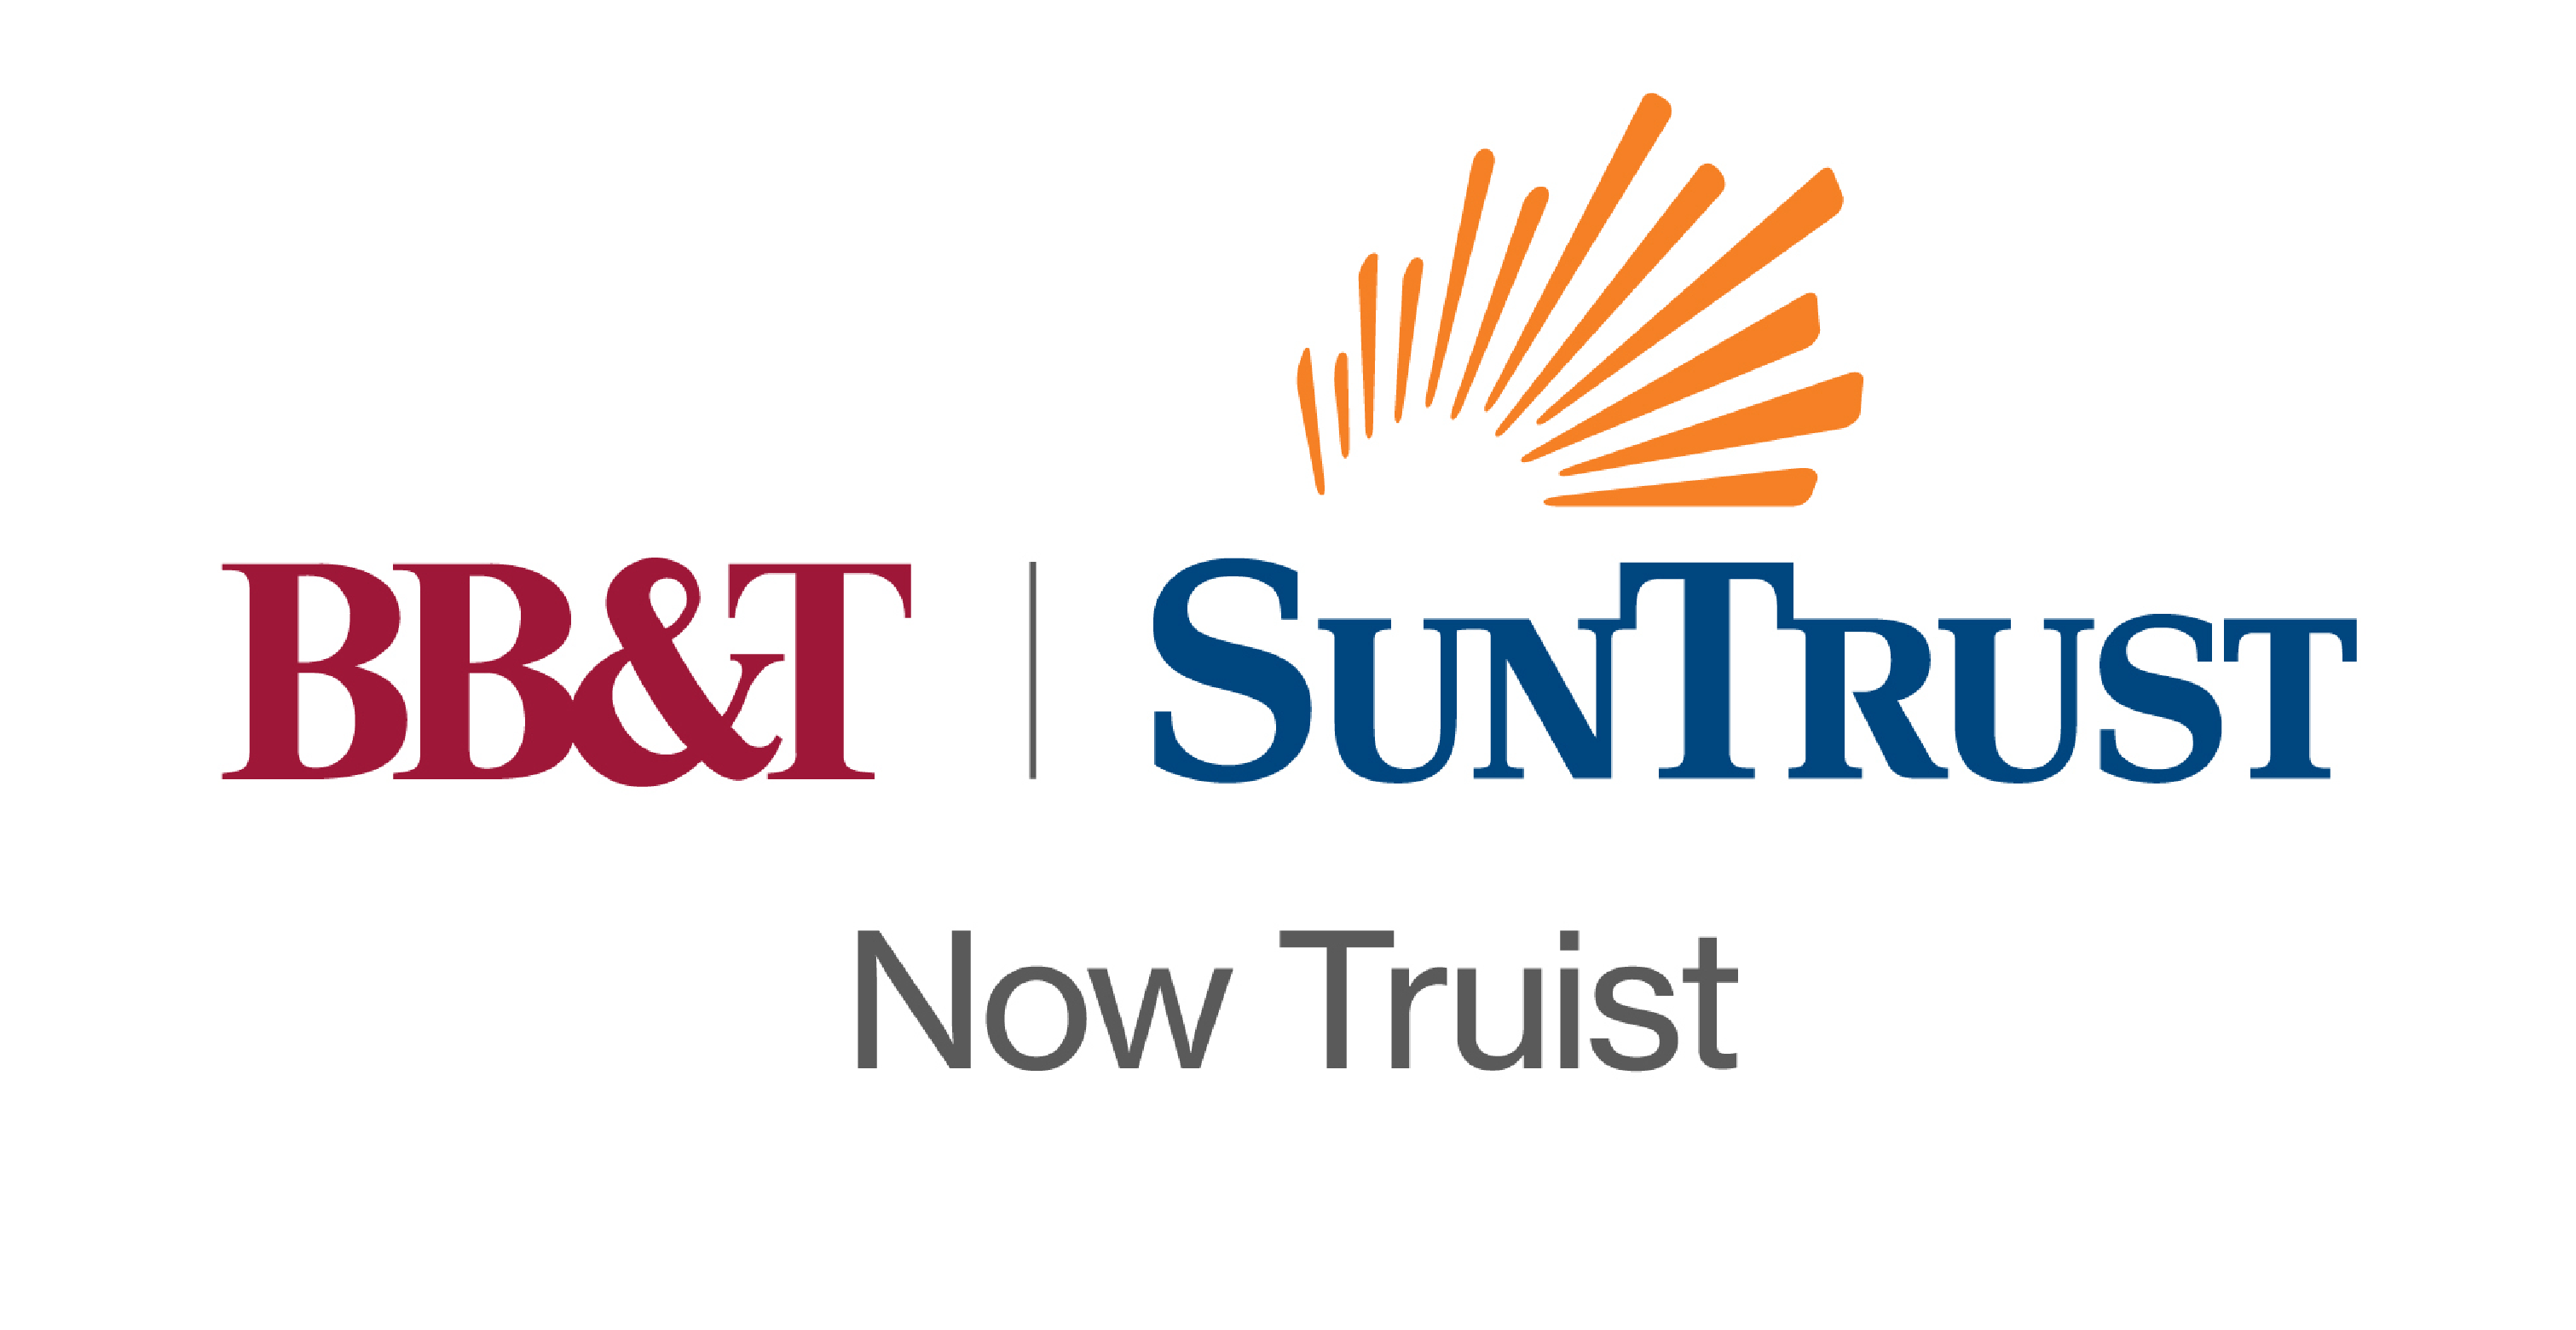 Truist (Formerly Suntrust Bank)